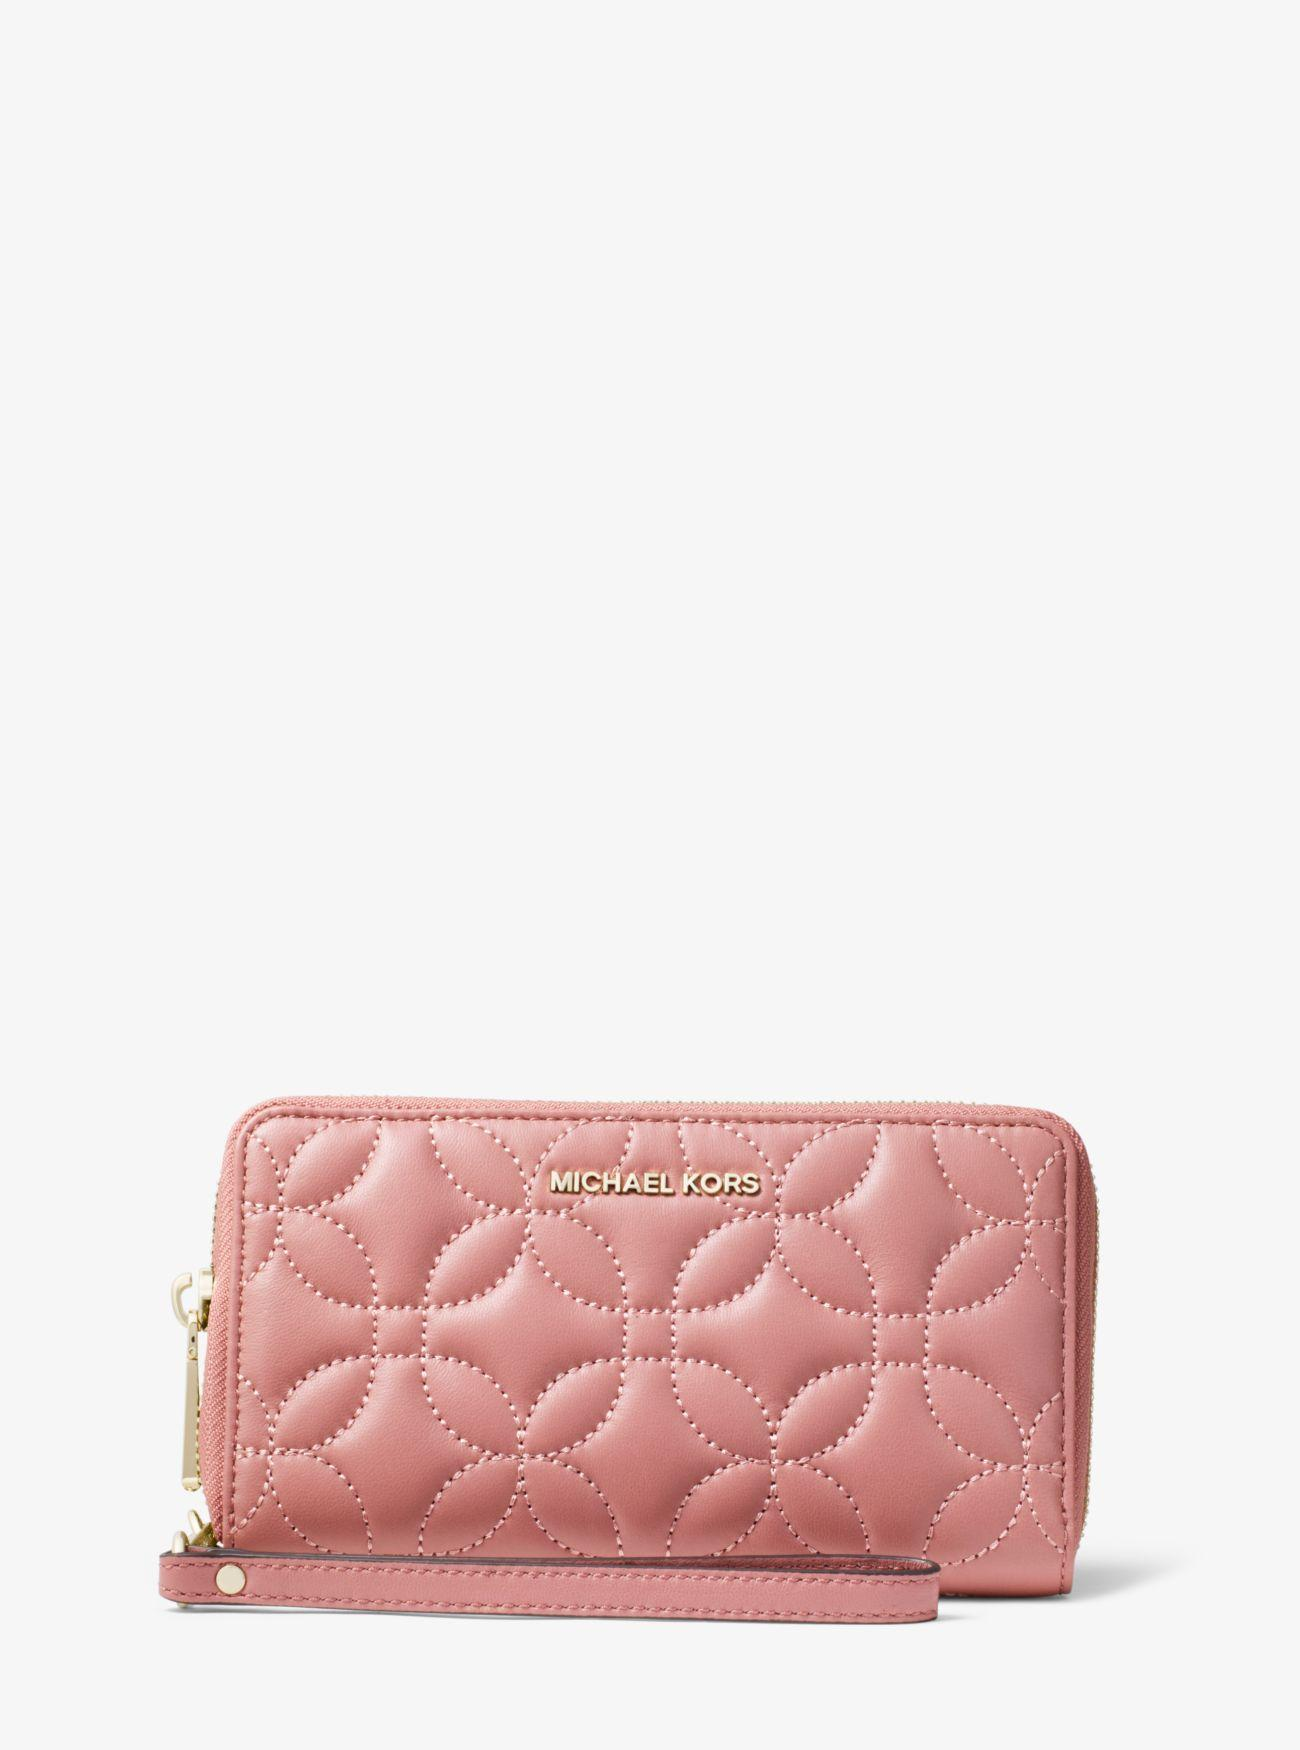 0b53ba5871538 Lyst - MICHAEL Michael Kors Large Quilted Leather Smartphone ...